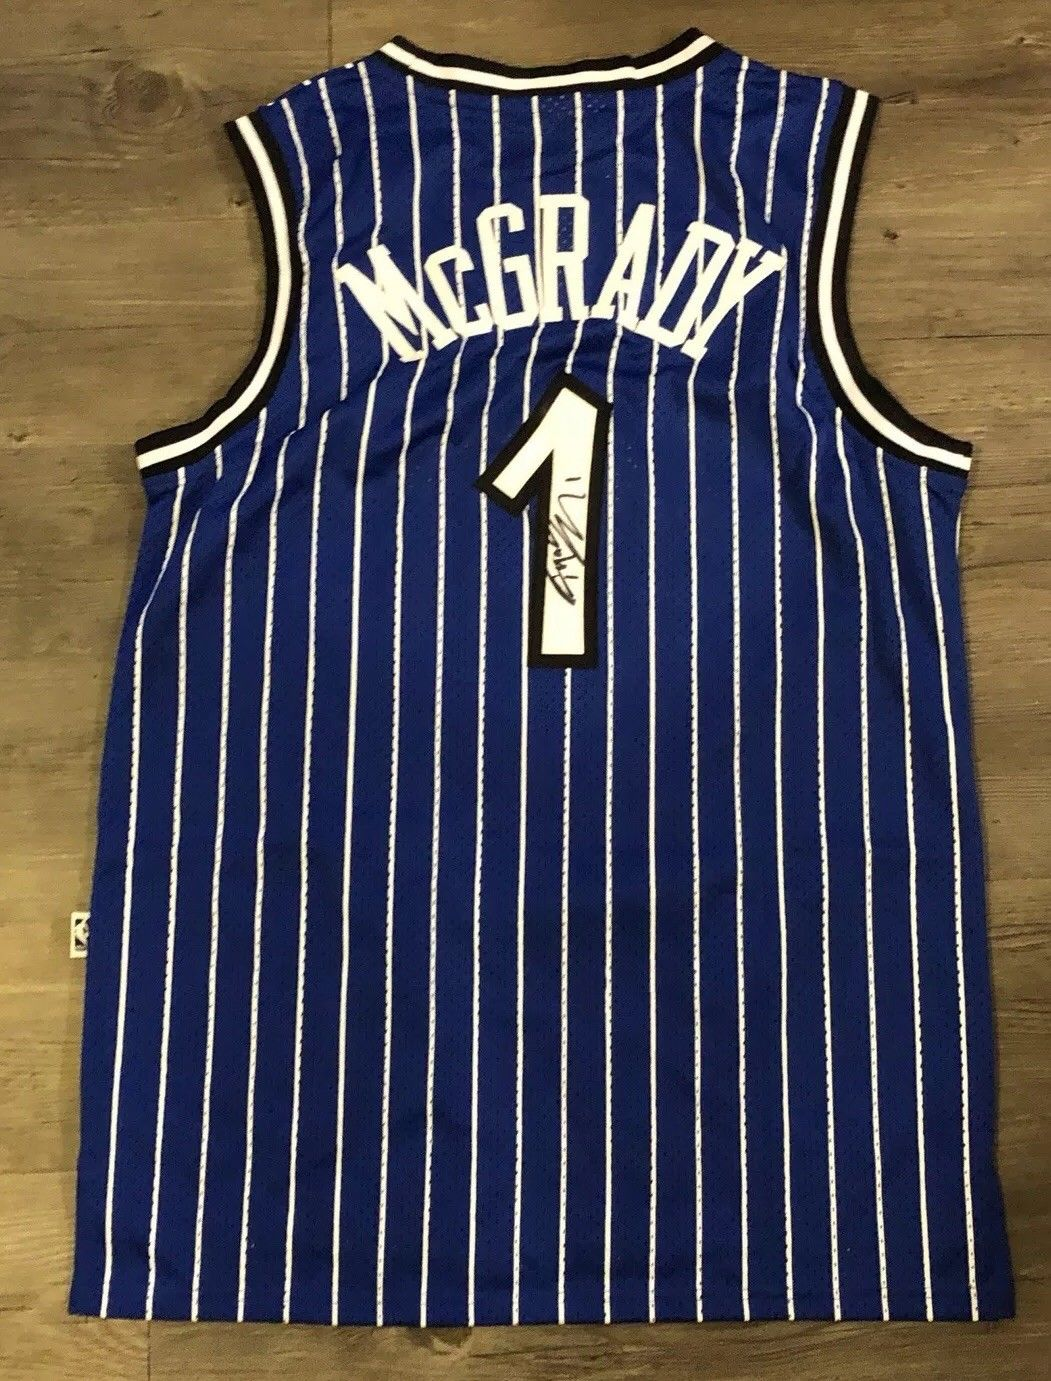 newest d98a5 2d4a0 Tracy Mcgrady Signed Orlando Magic Jersey - ALL STAR Toronto ...